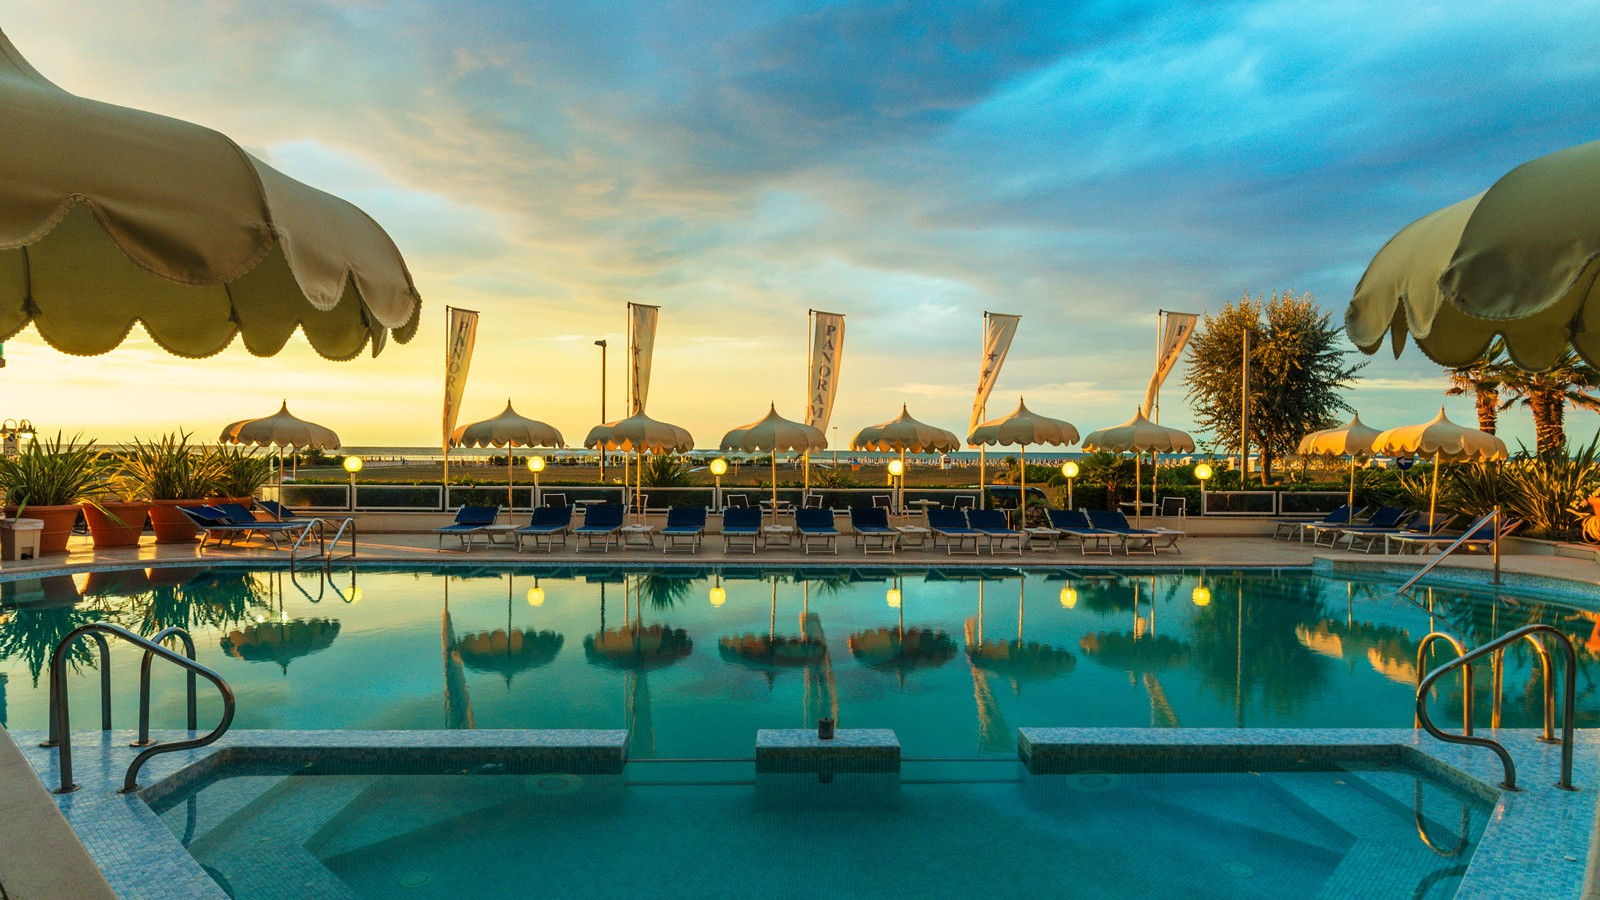 Gutschein Family Hotel 4 Sterne Caorle - Hotel Panoramic - Official Site